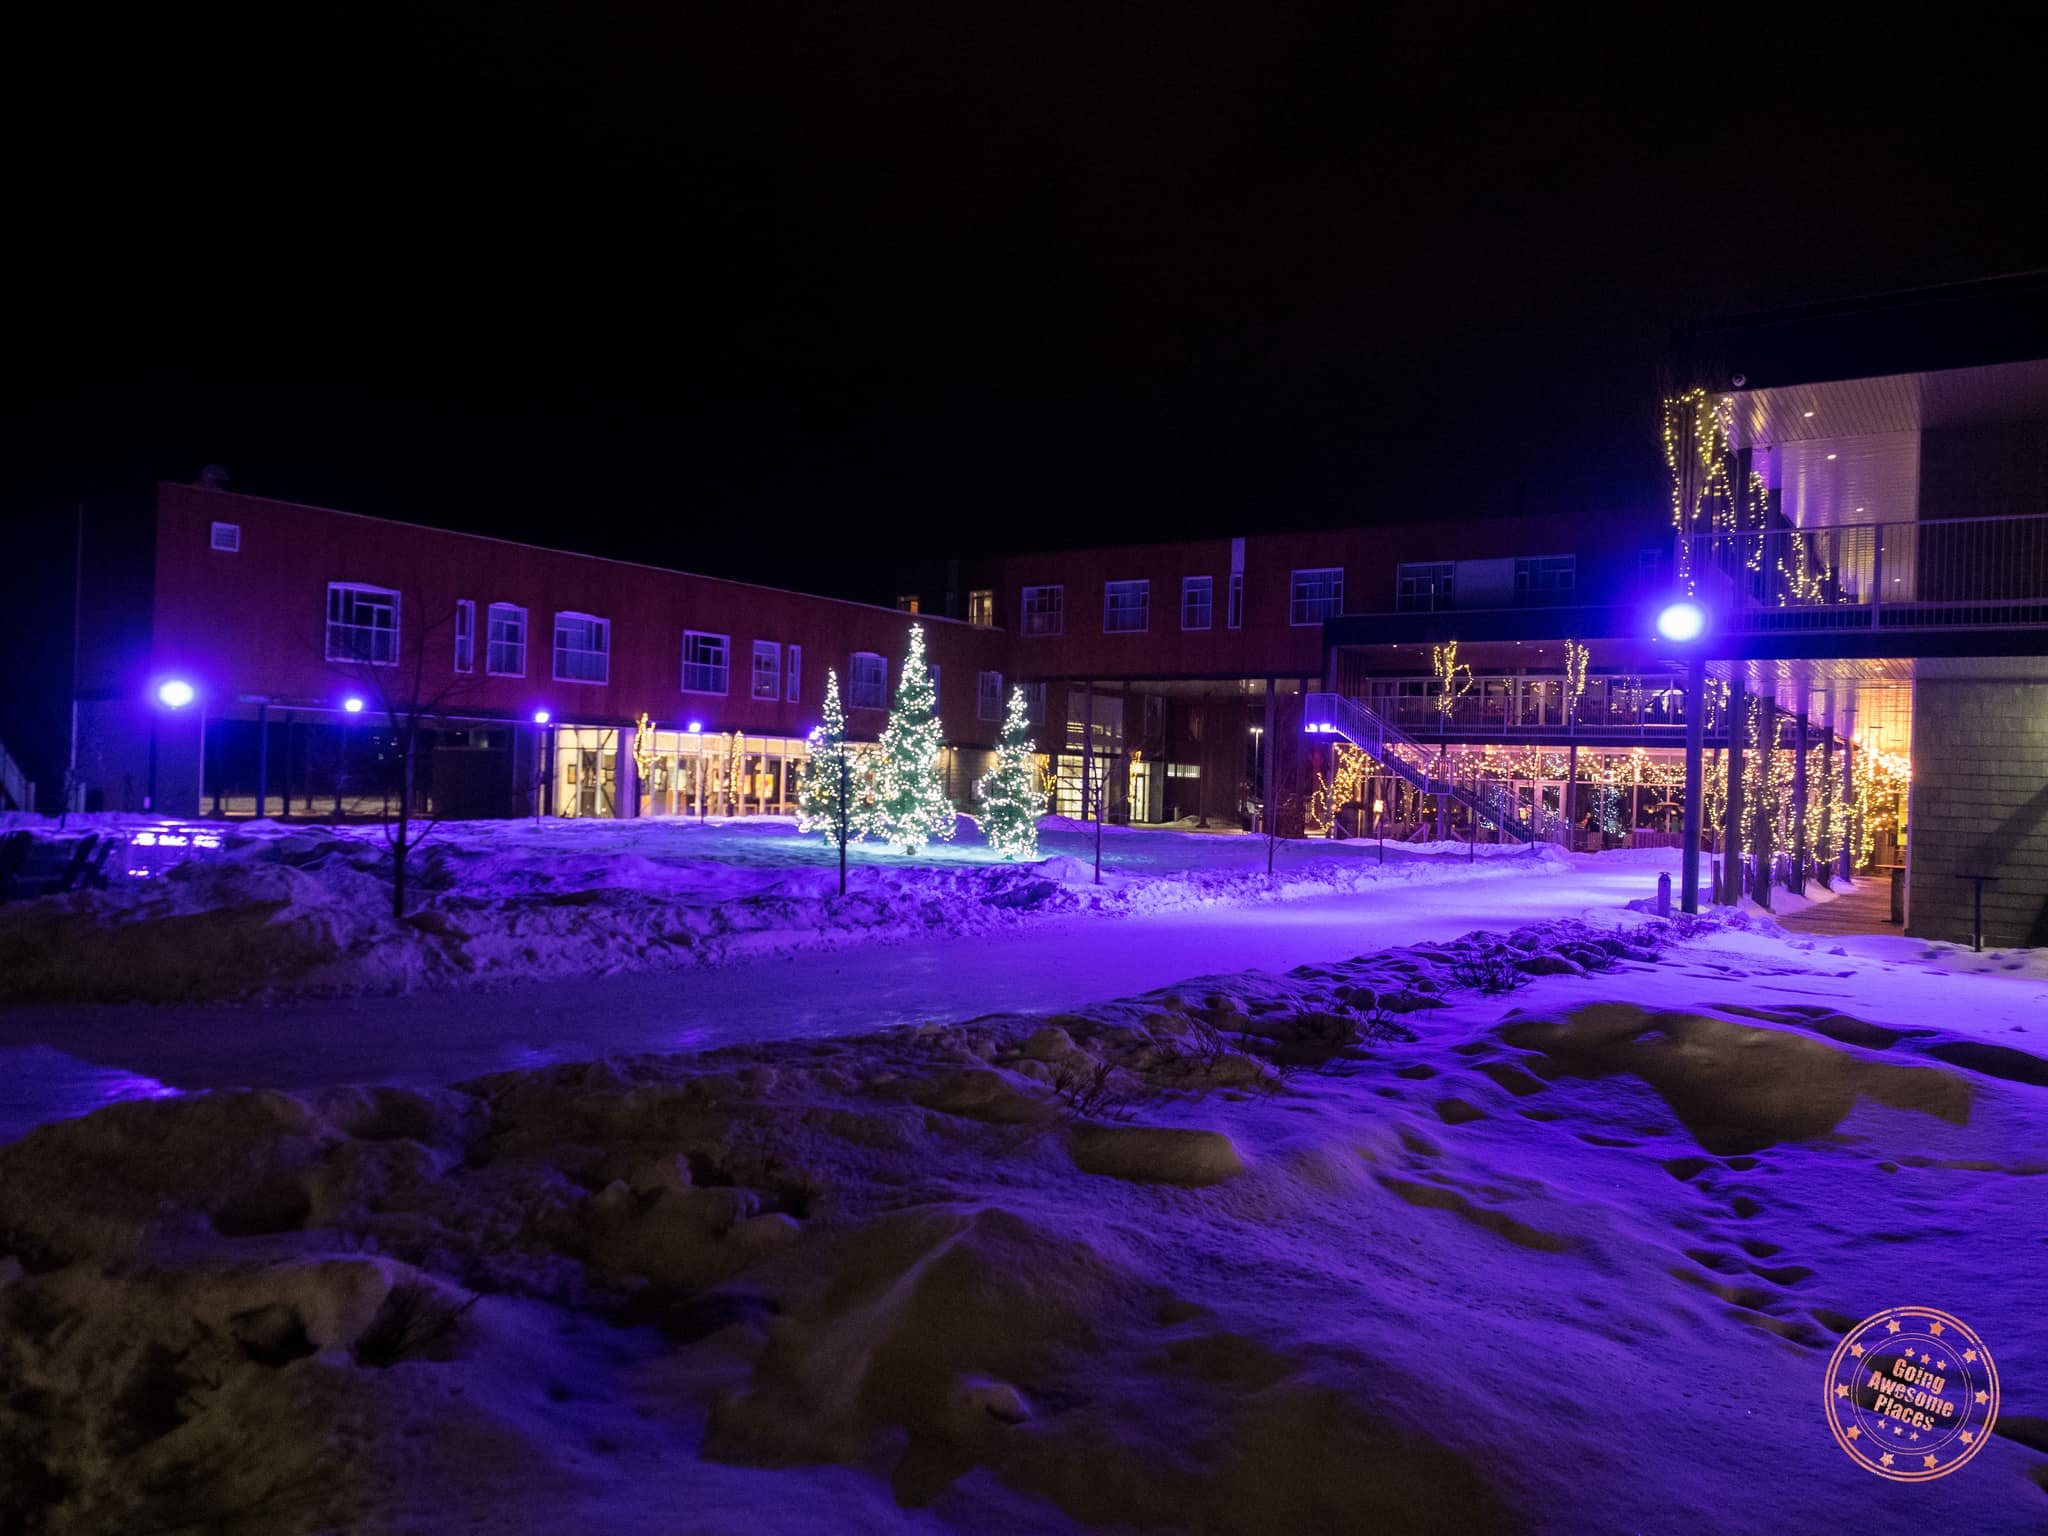 Le Germain Hotel Charlevoix At Night